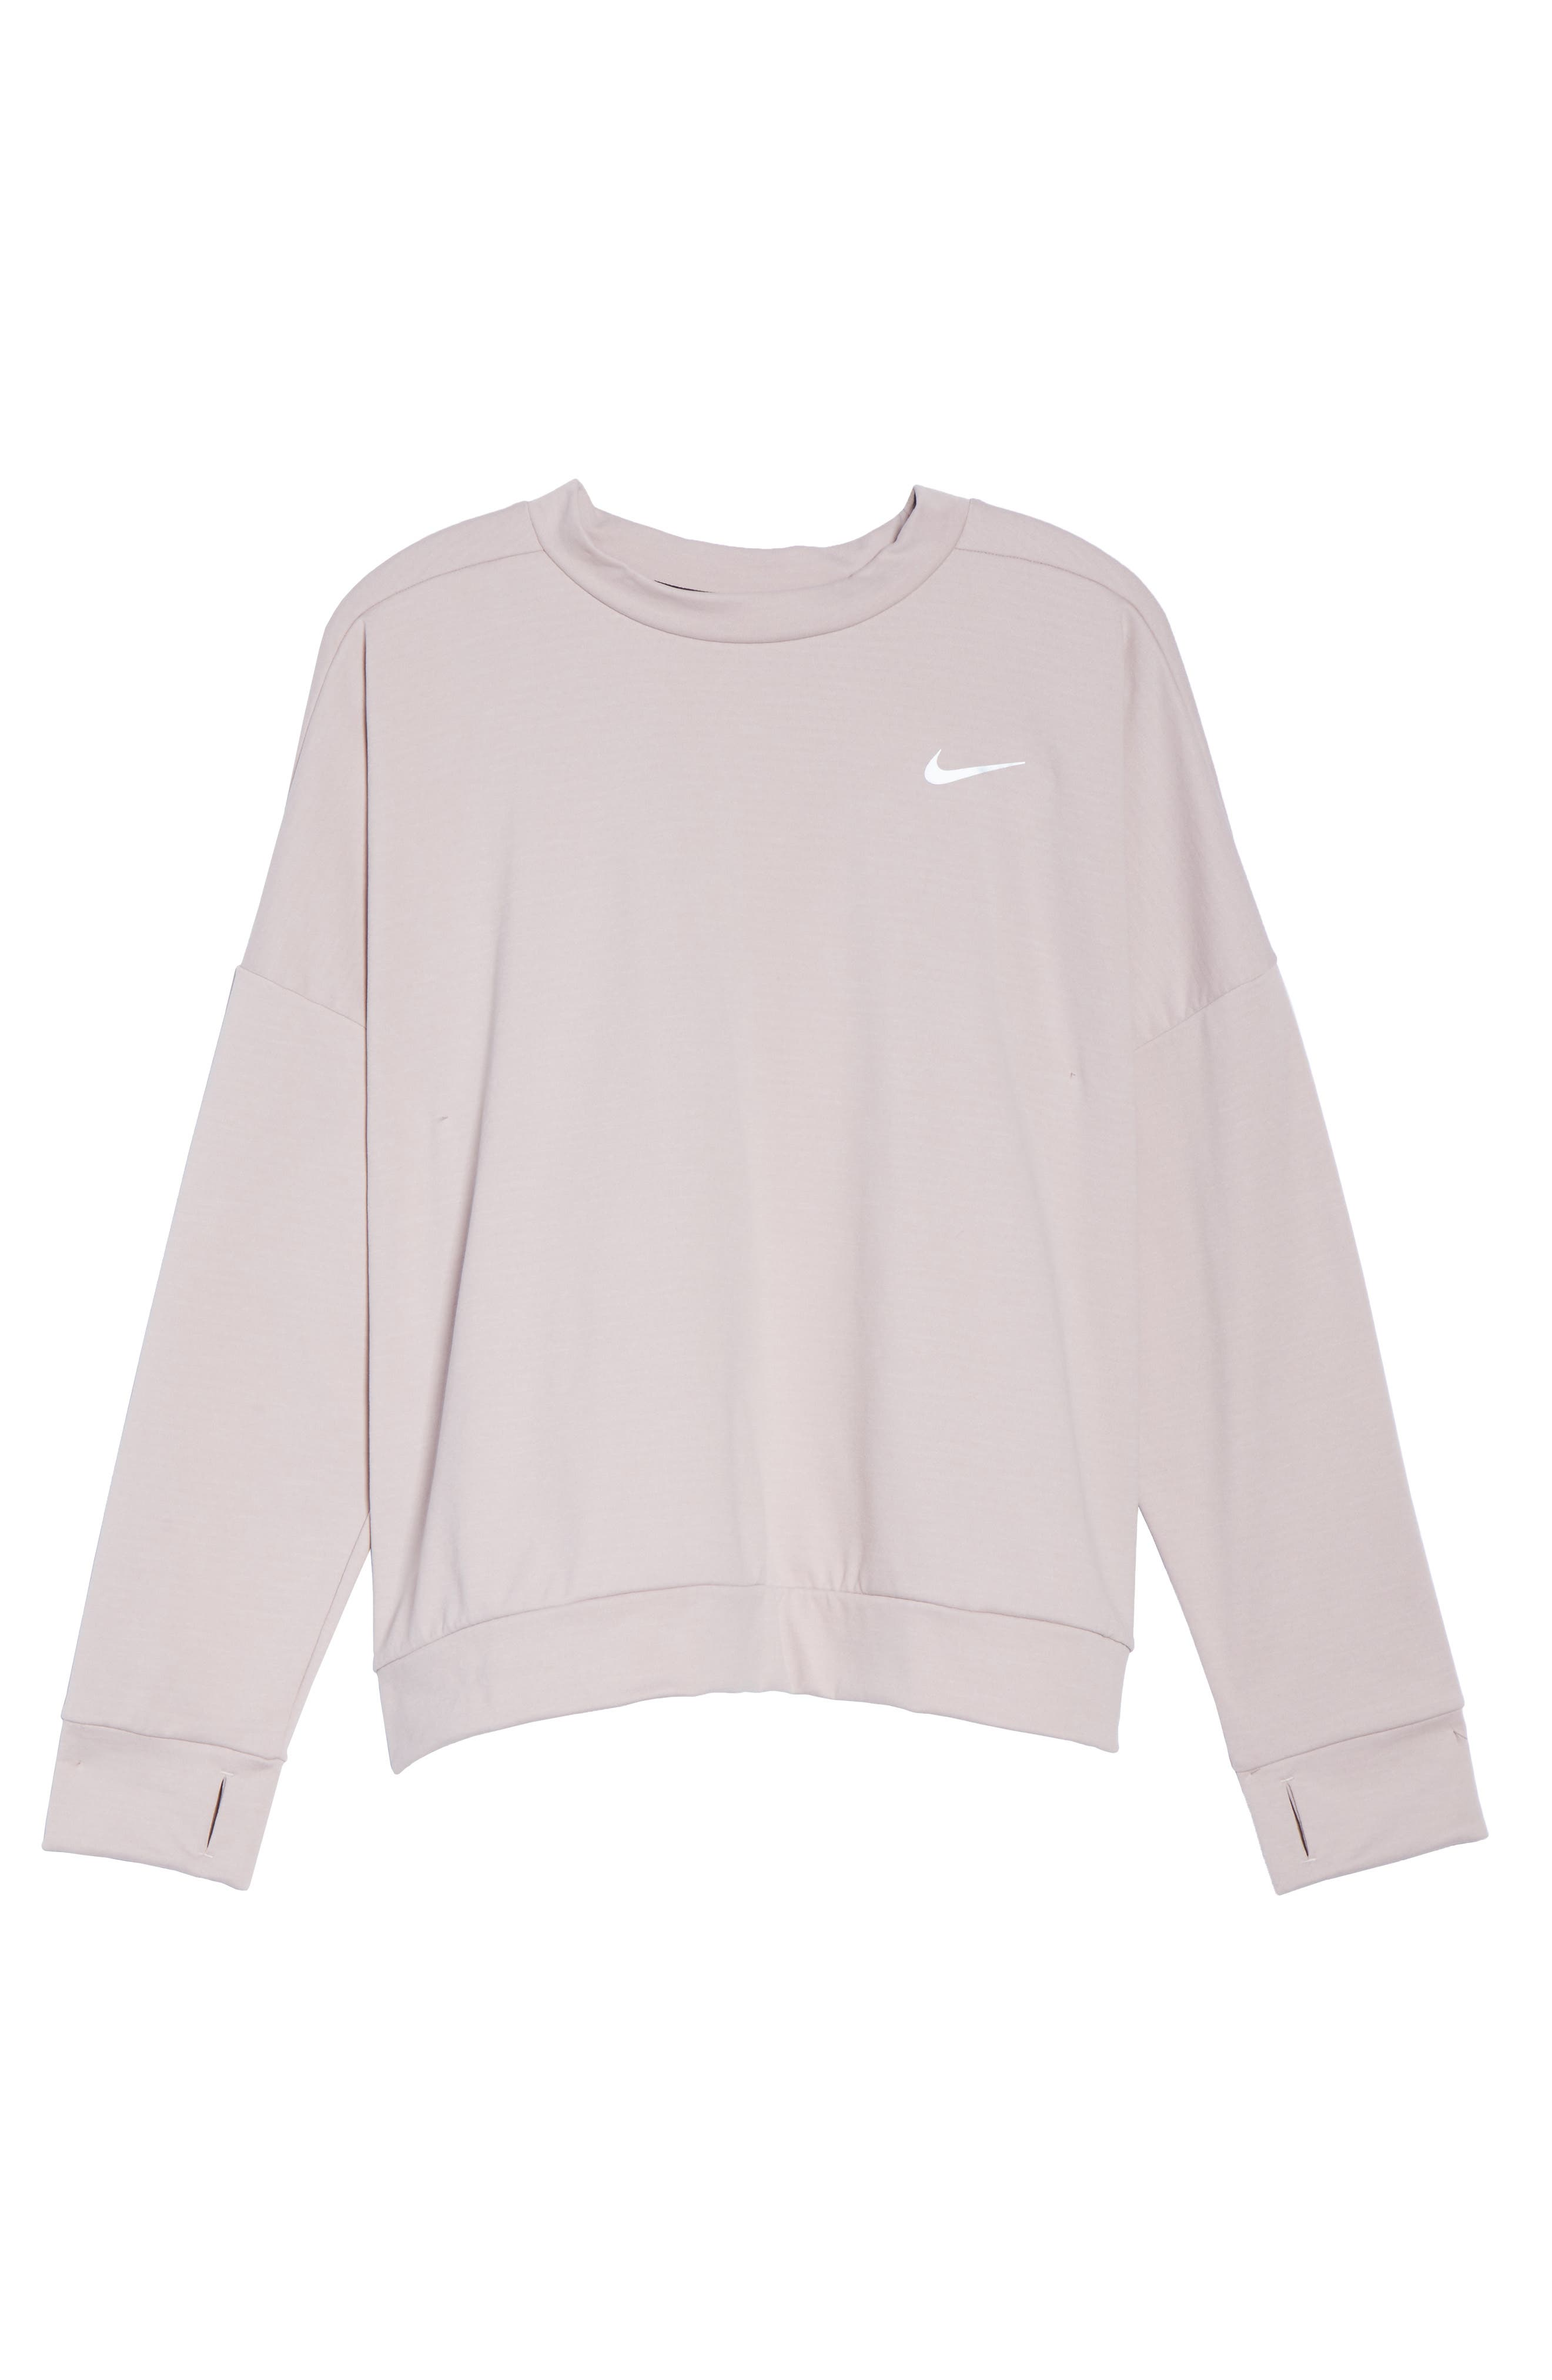 Nike Therma Sphere Element Running Top (Plus Size)